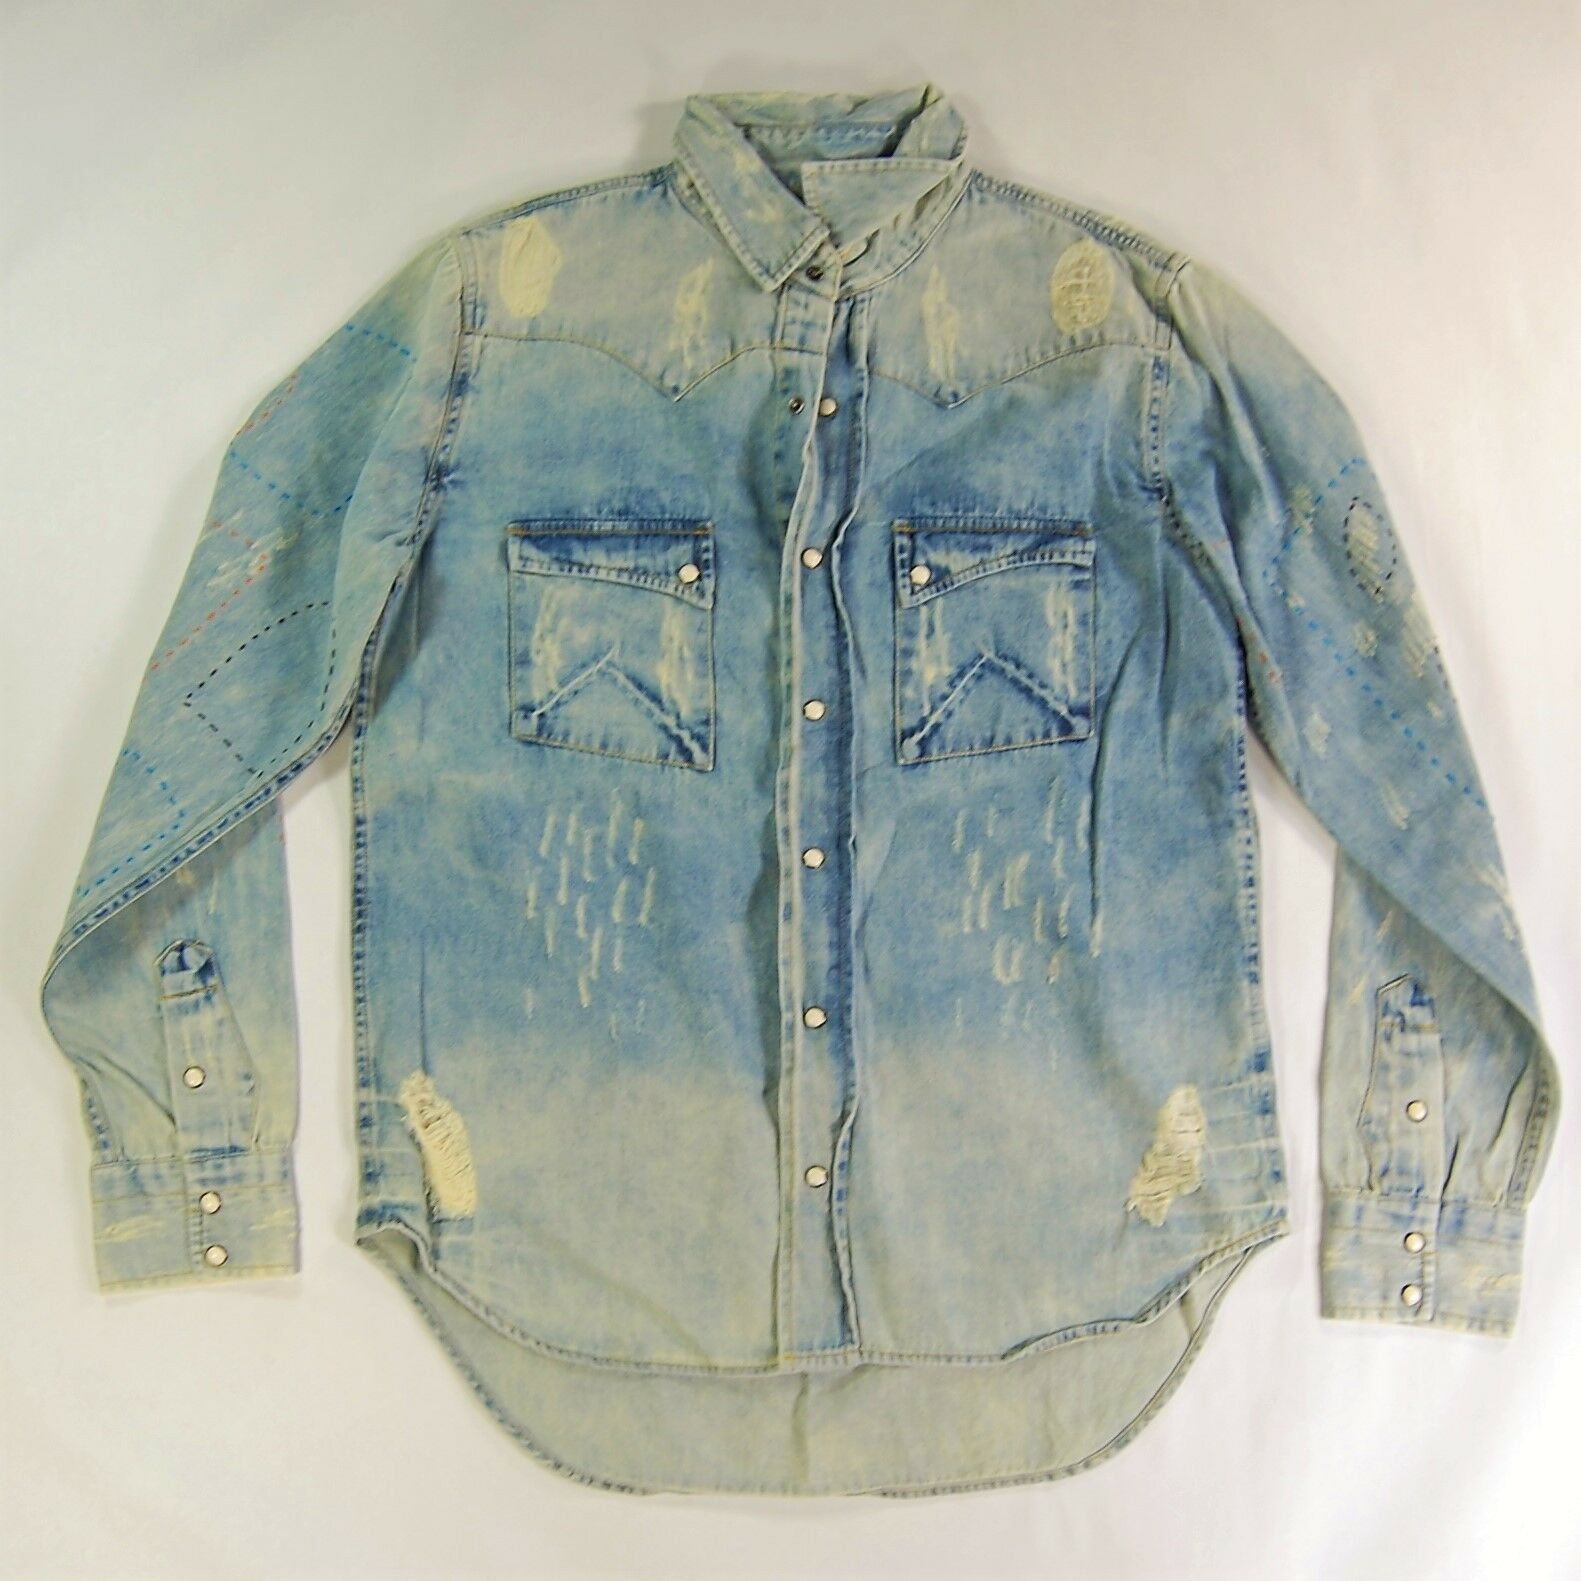 New ARTISAN DE'LUXE stitched distressed DESTROYED DENIM button down shirt S